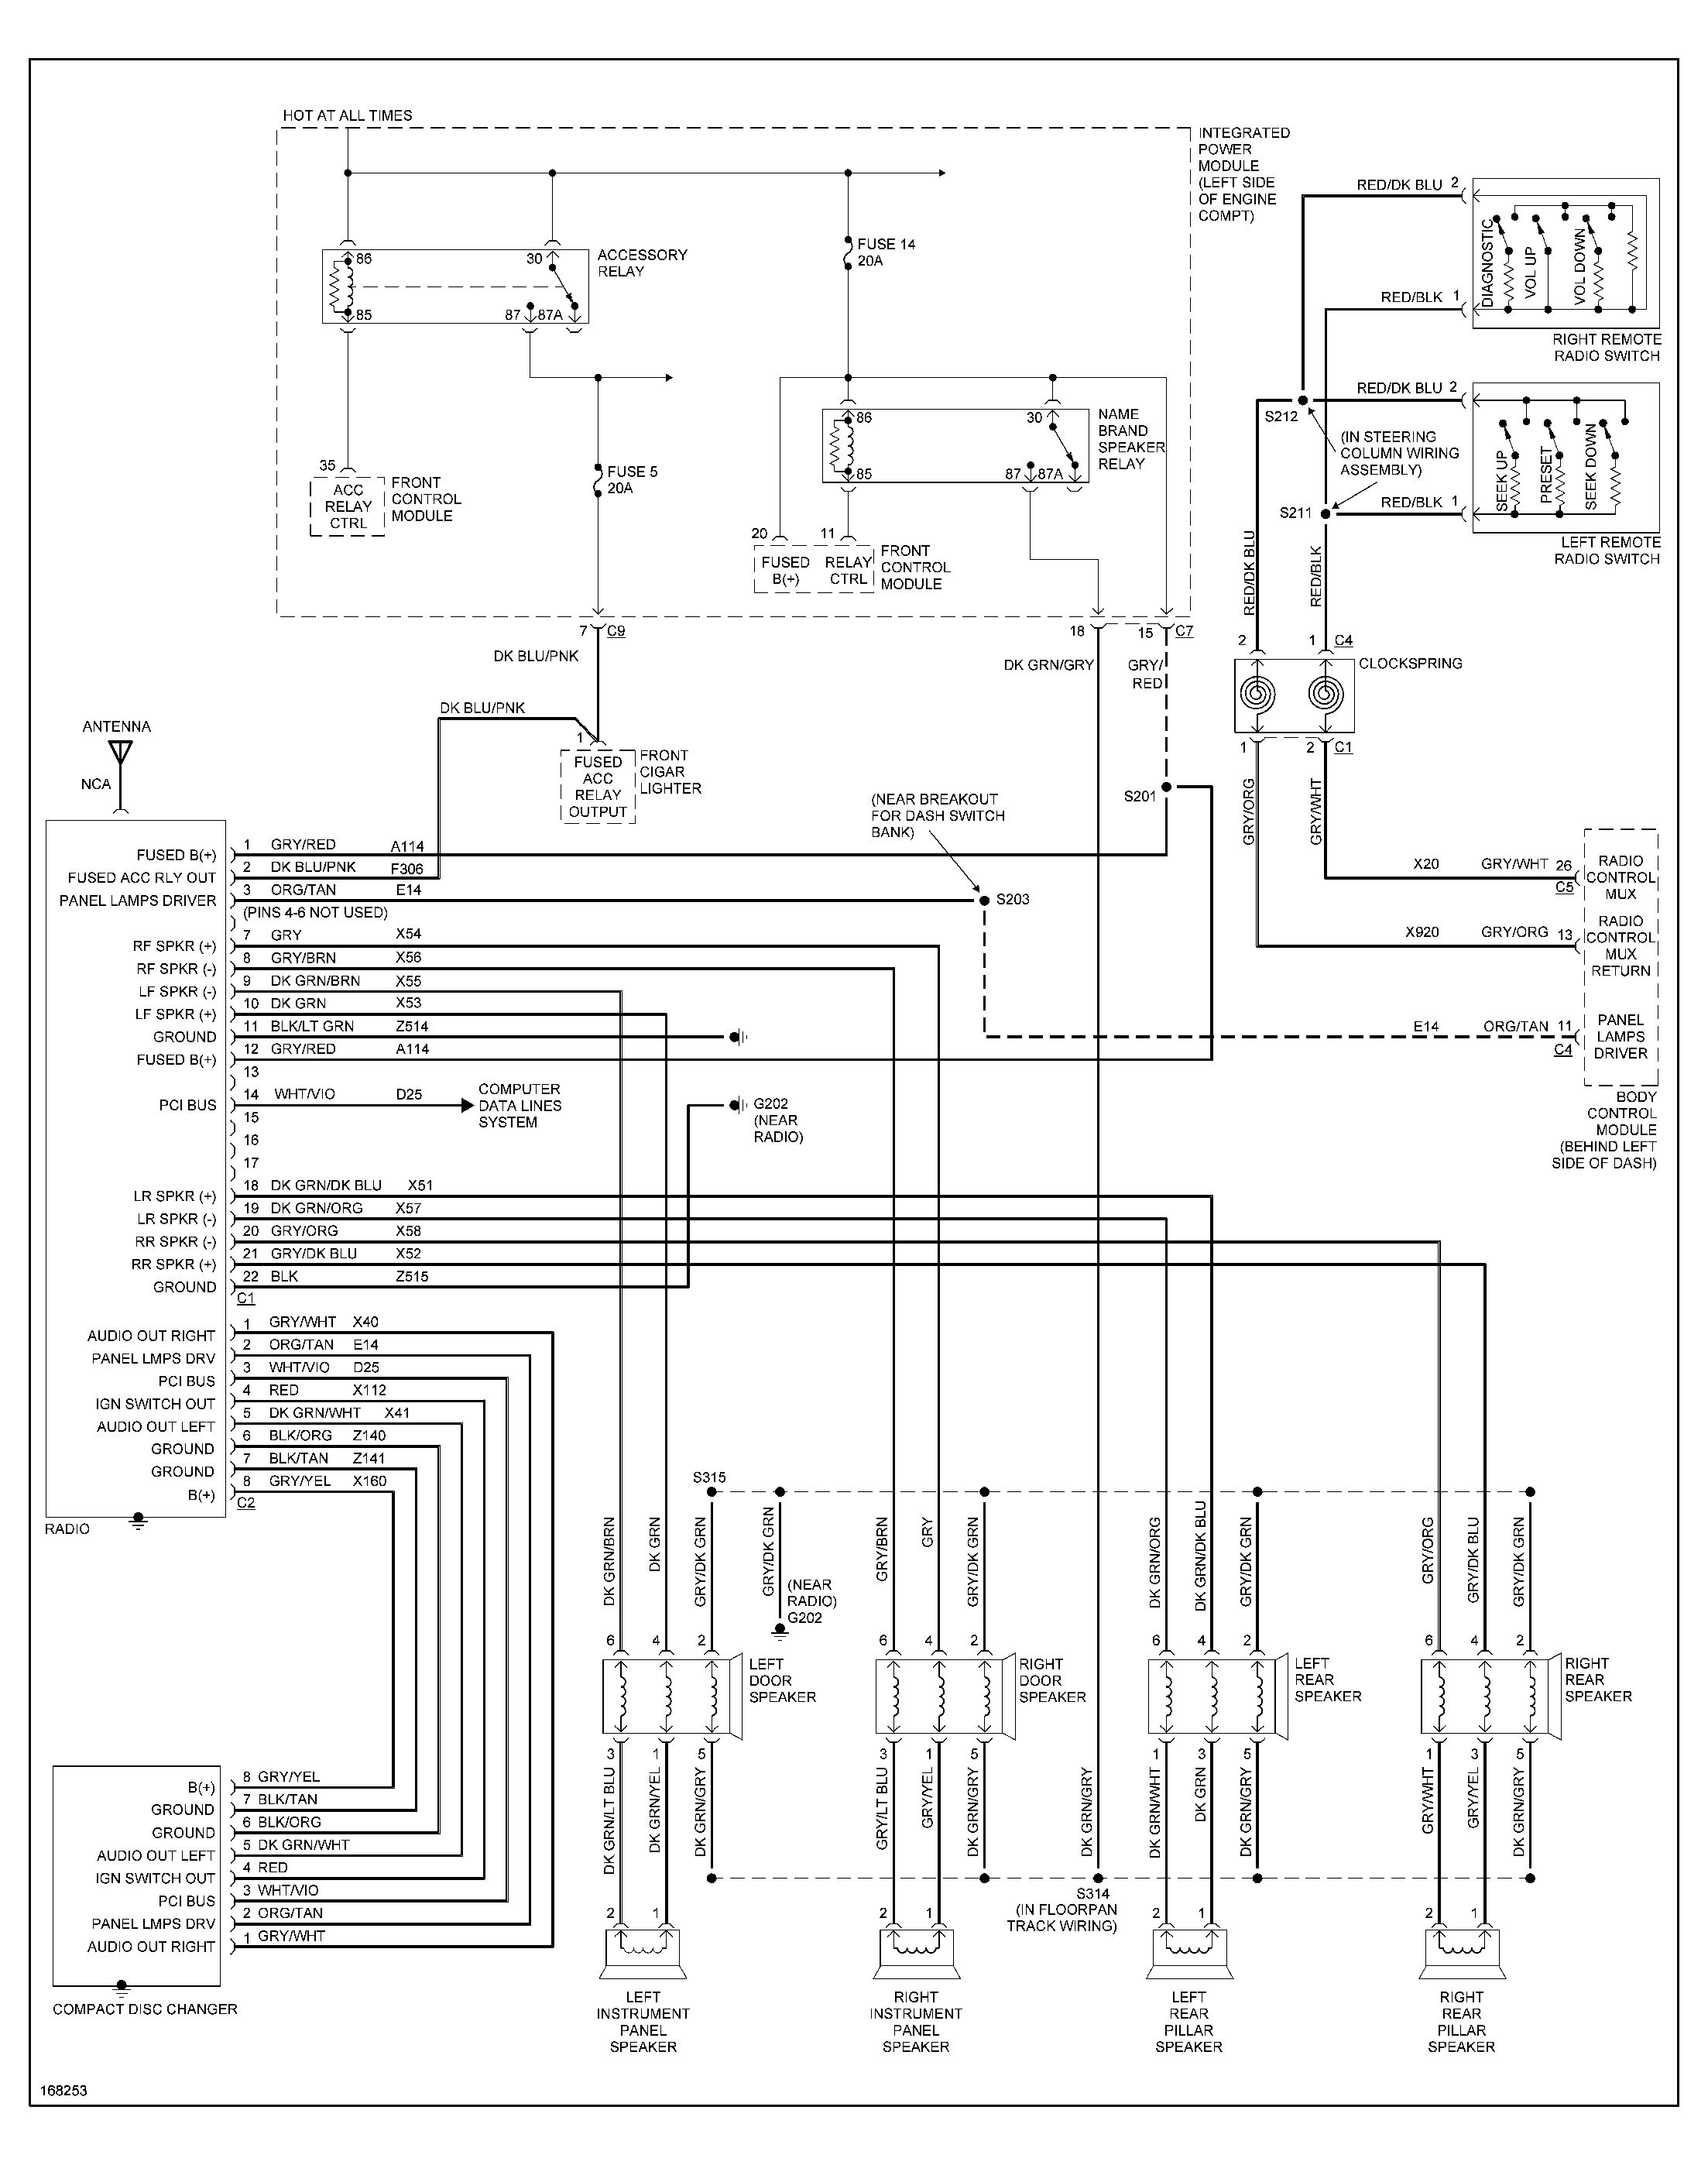 2003 Dodge Grand Caravan Radio Wiring Diagram Wiring Diagram Corsa C Corsa C Pasticceriagele It